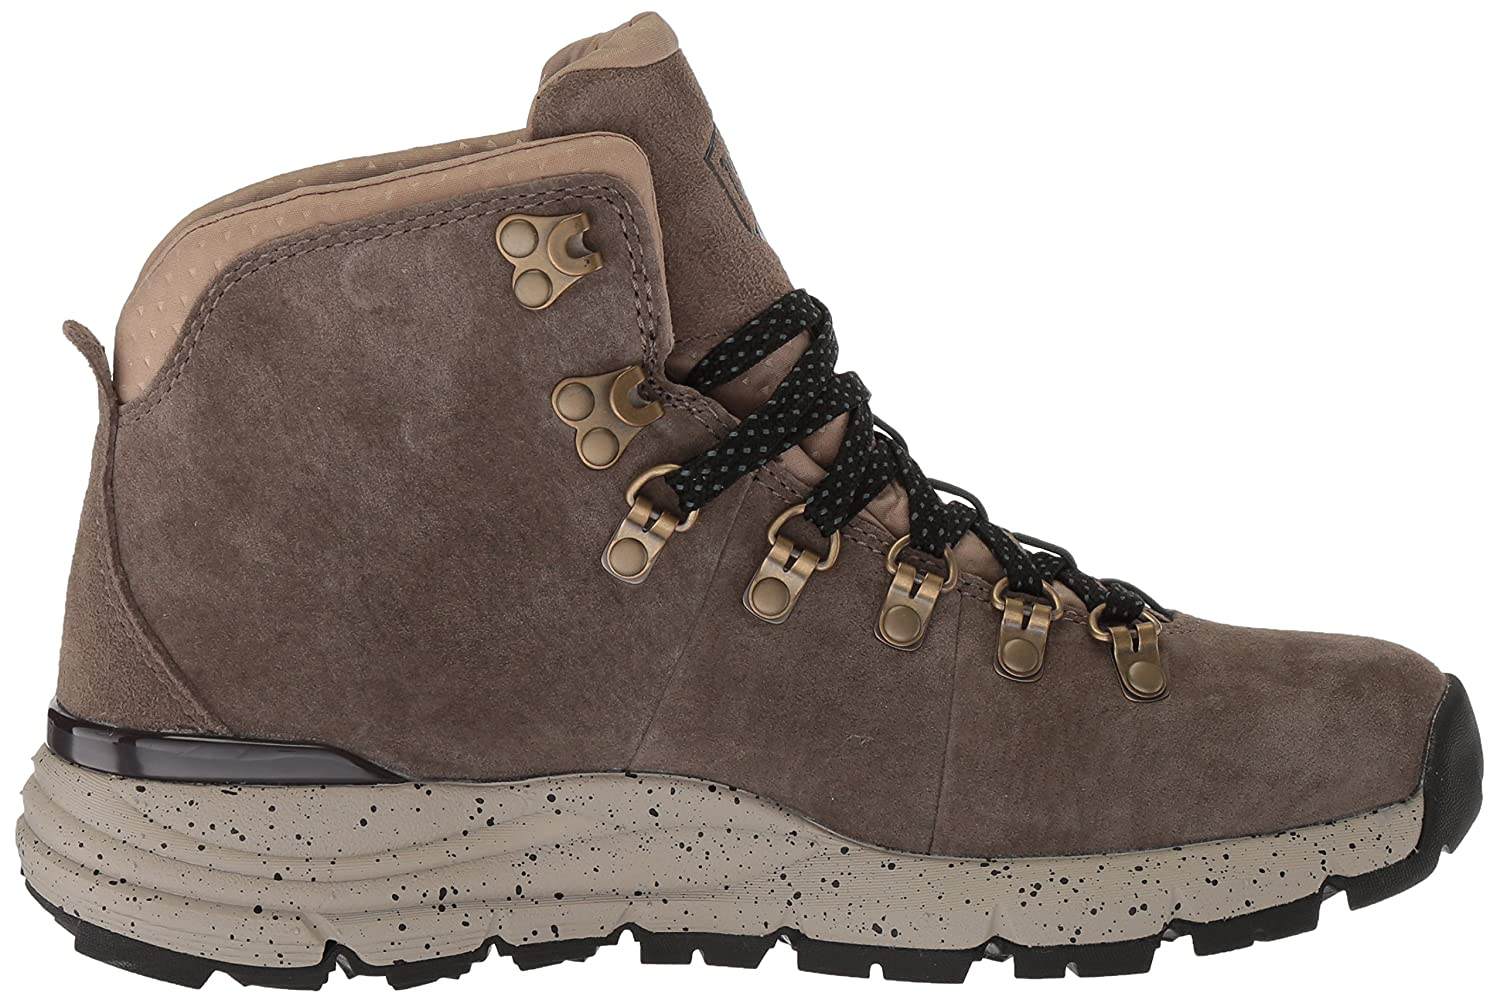 Danner Women's Mountain 600 4.5